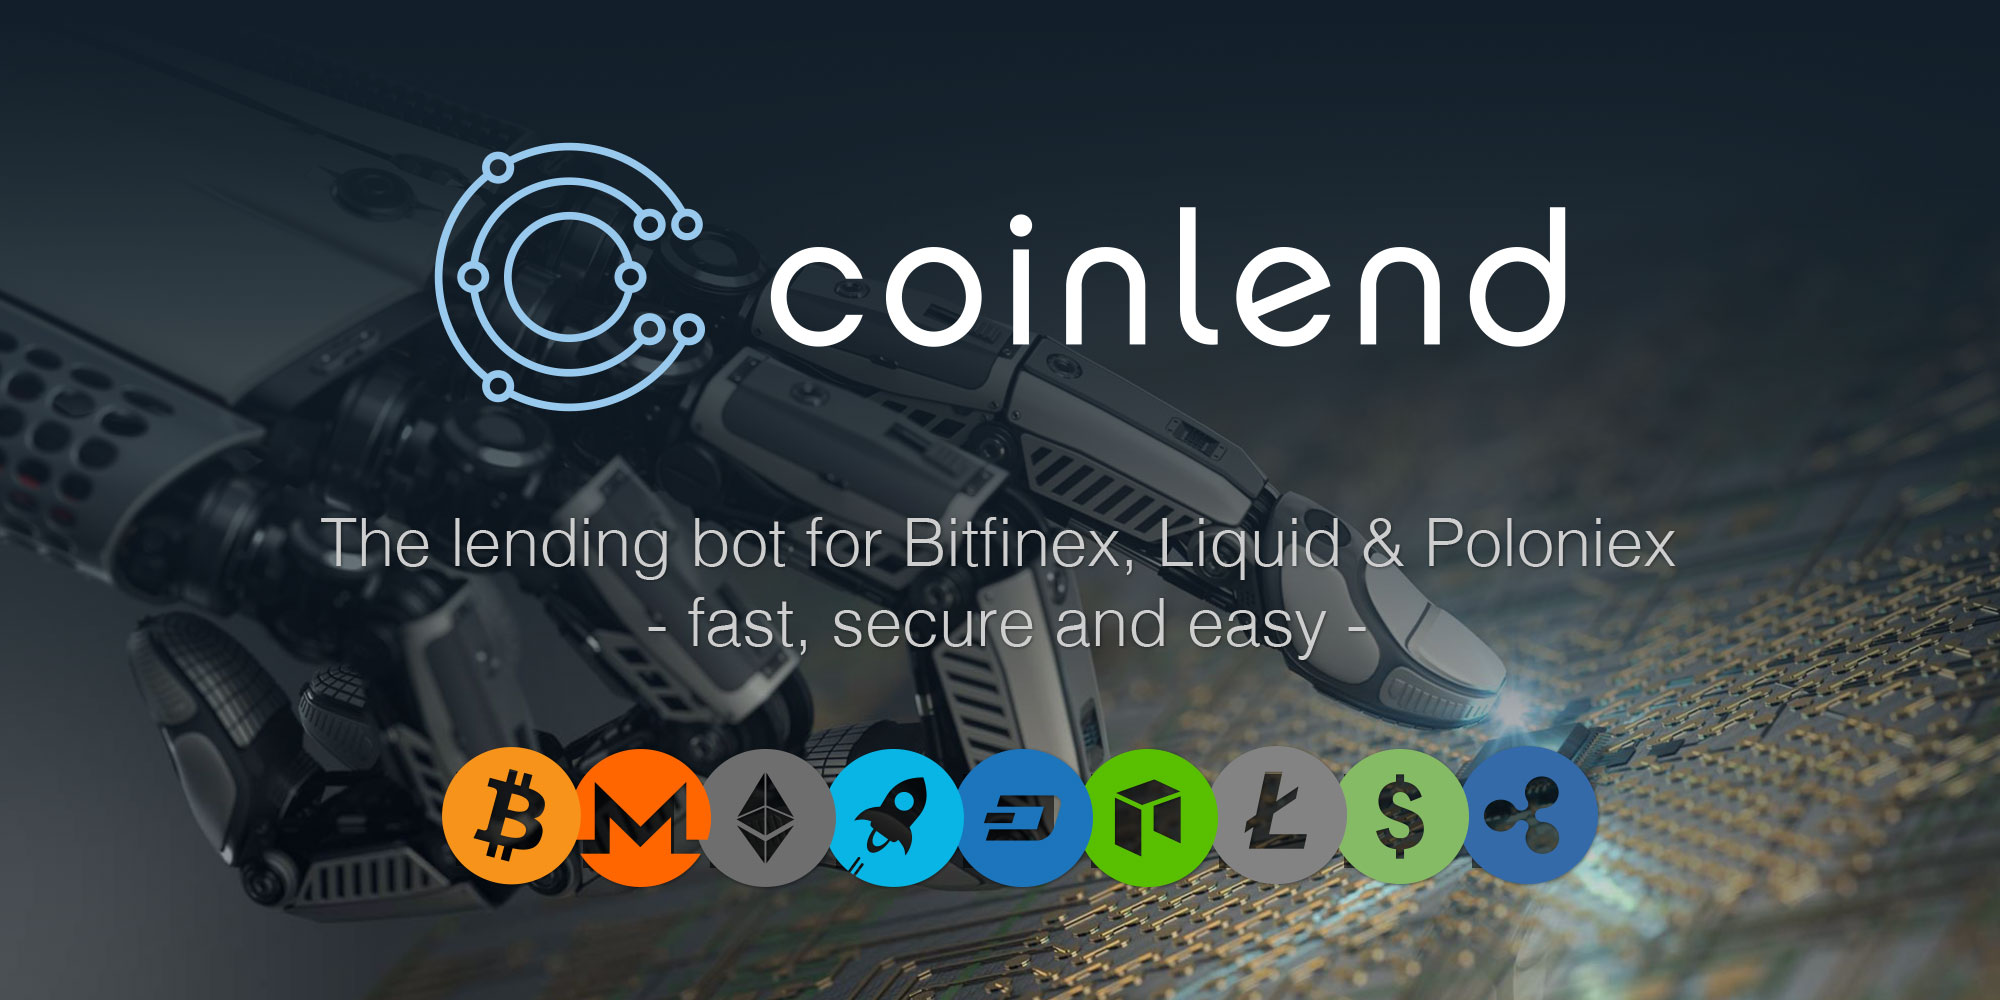 Coinlend - The Lending-Bot for Bitfinex, Poloniex & Liquid